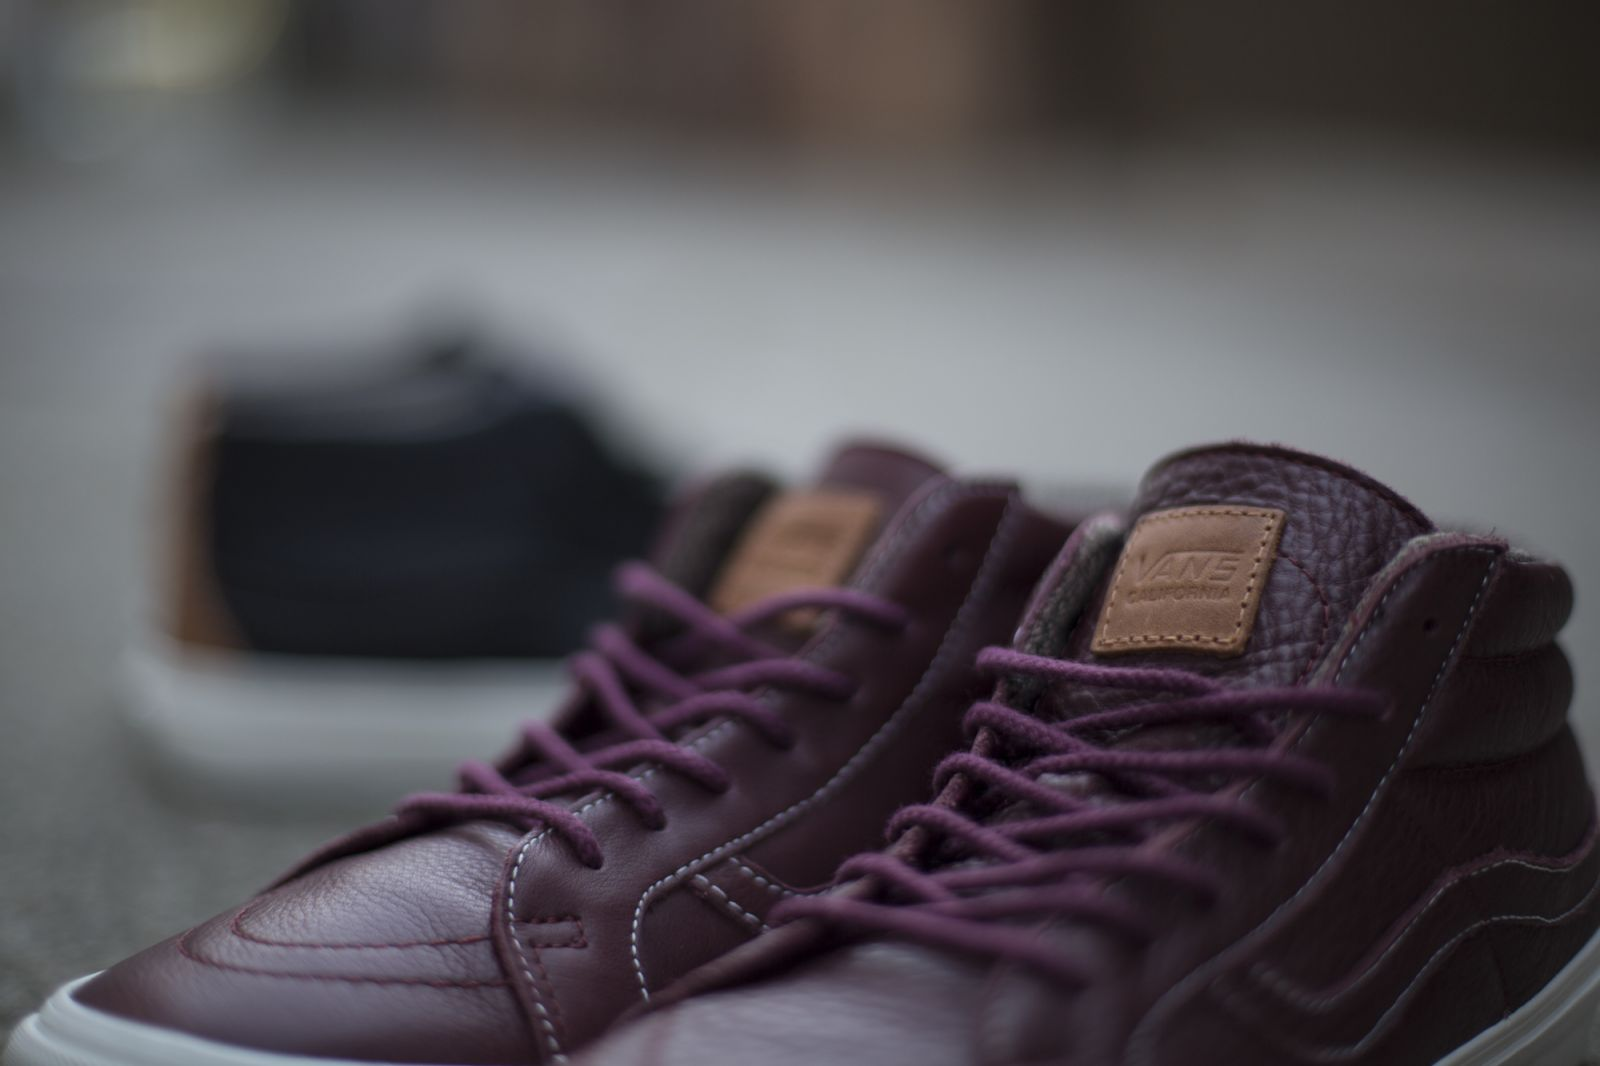 vans-california-sk8-mid-waxed-leather-pack-5